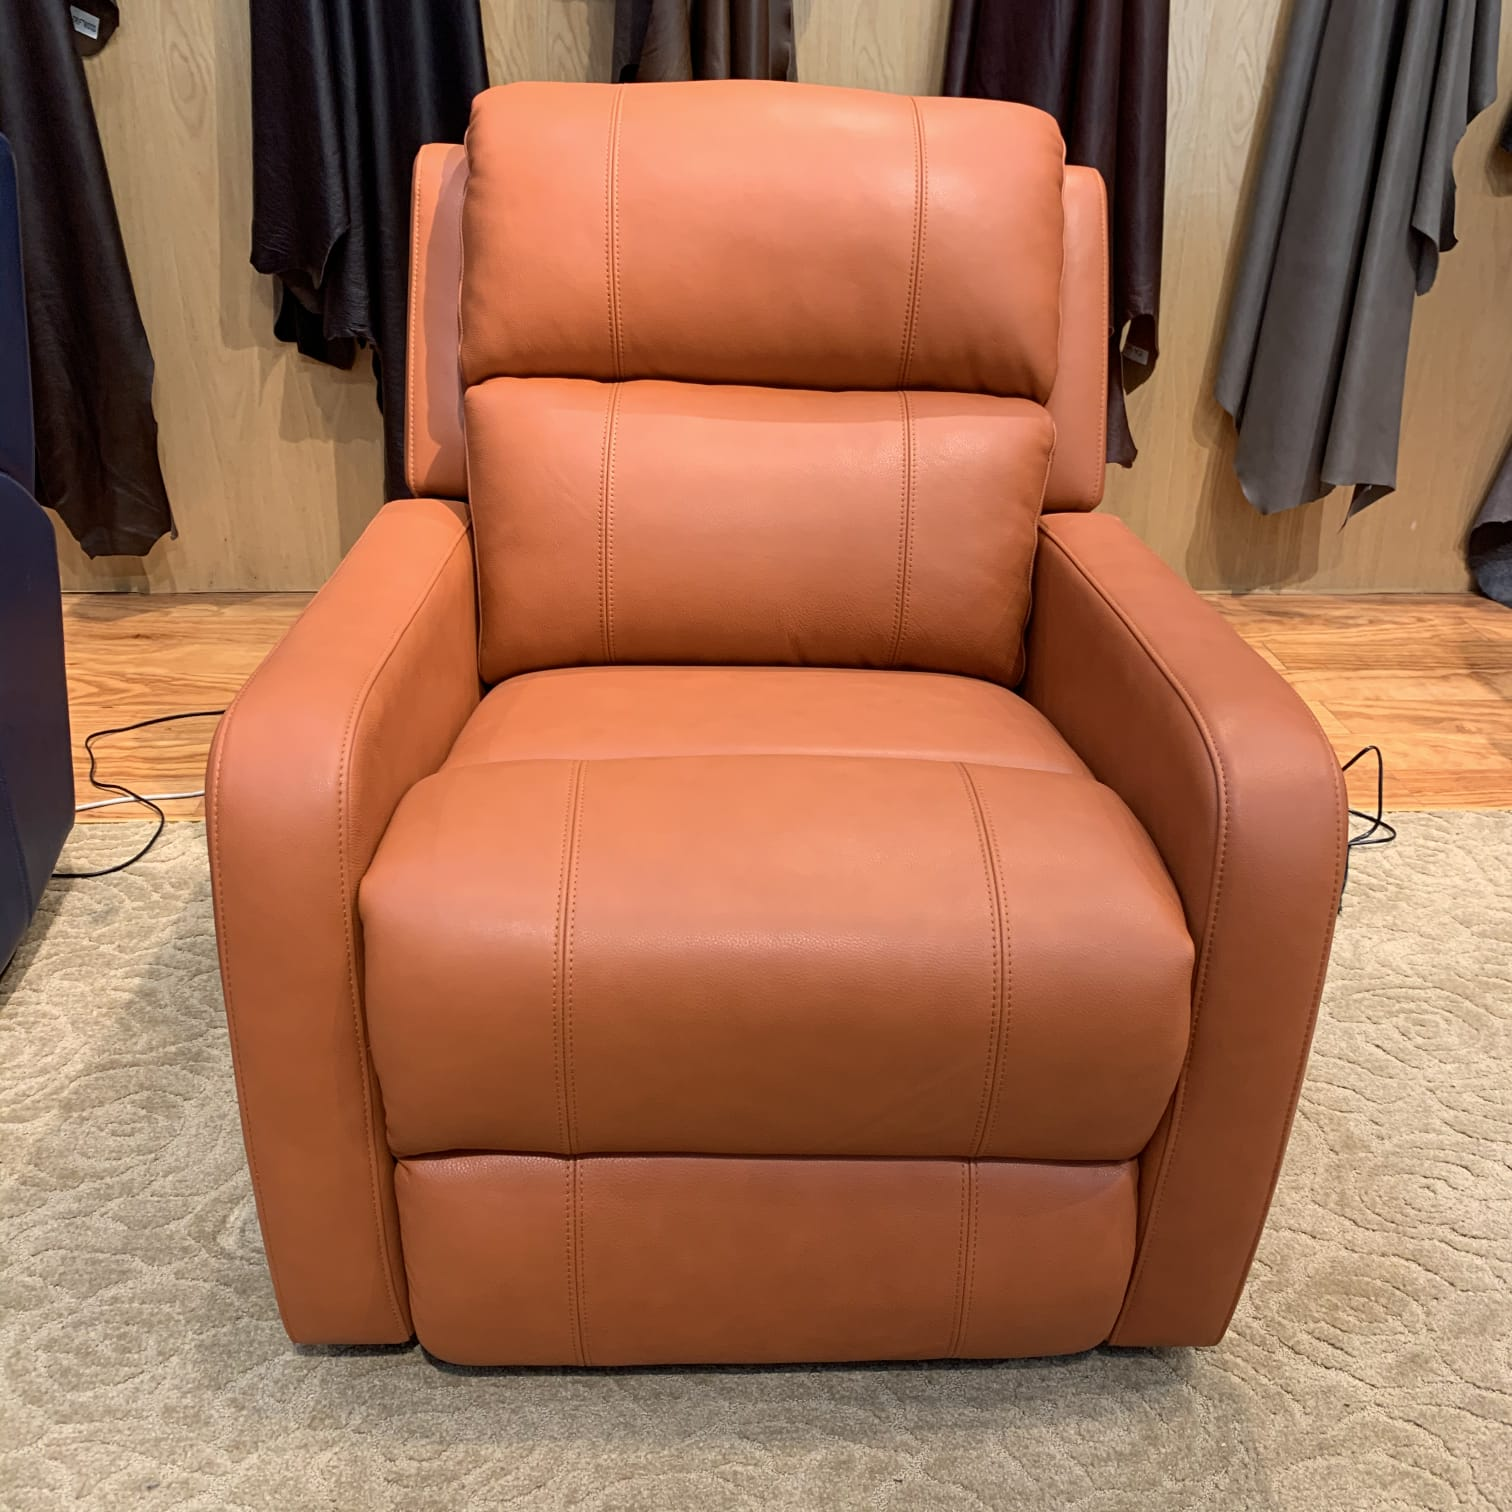 orange rocking recliner armchair in italian top grain leather